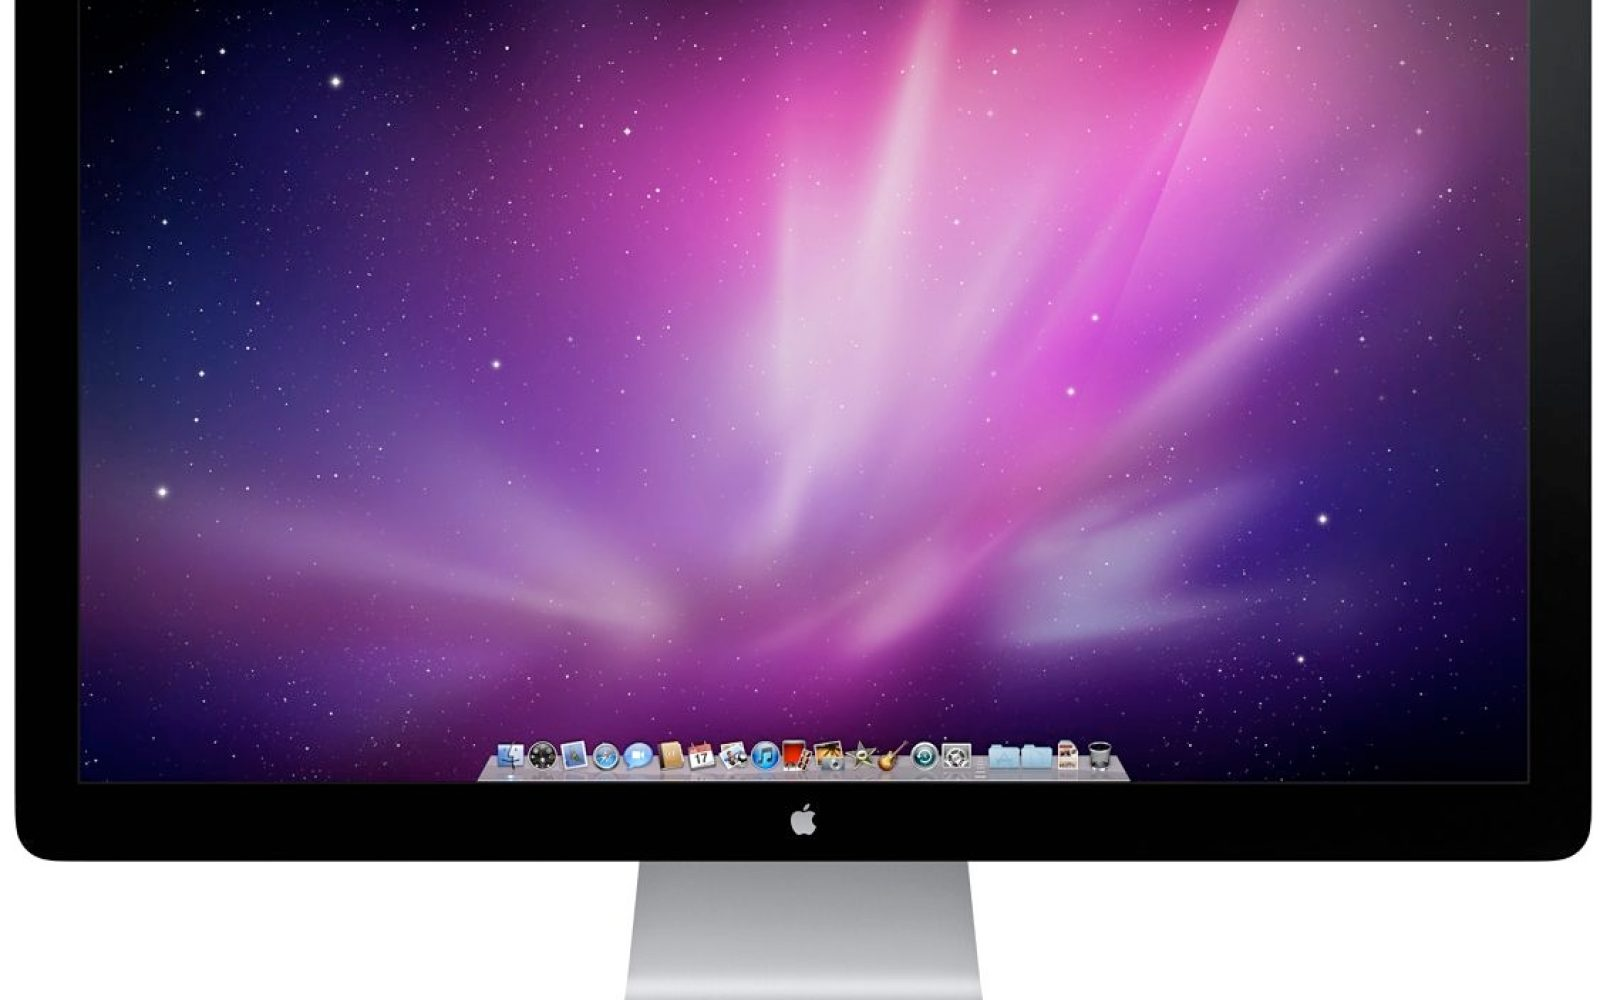 Apple quietly issues firmware fix for Thunderbolt flickering